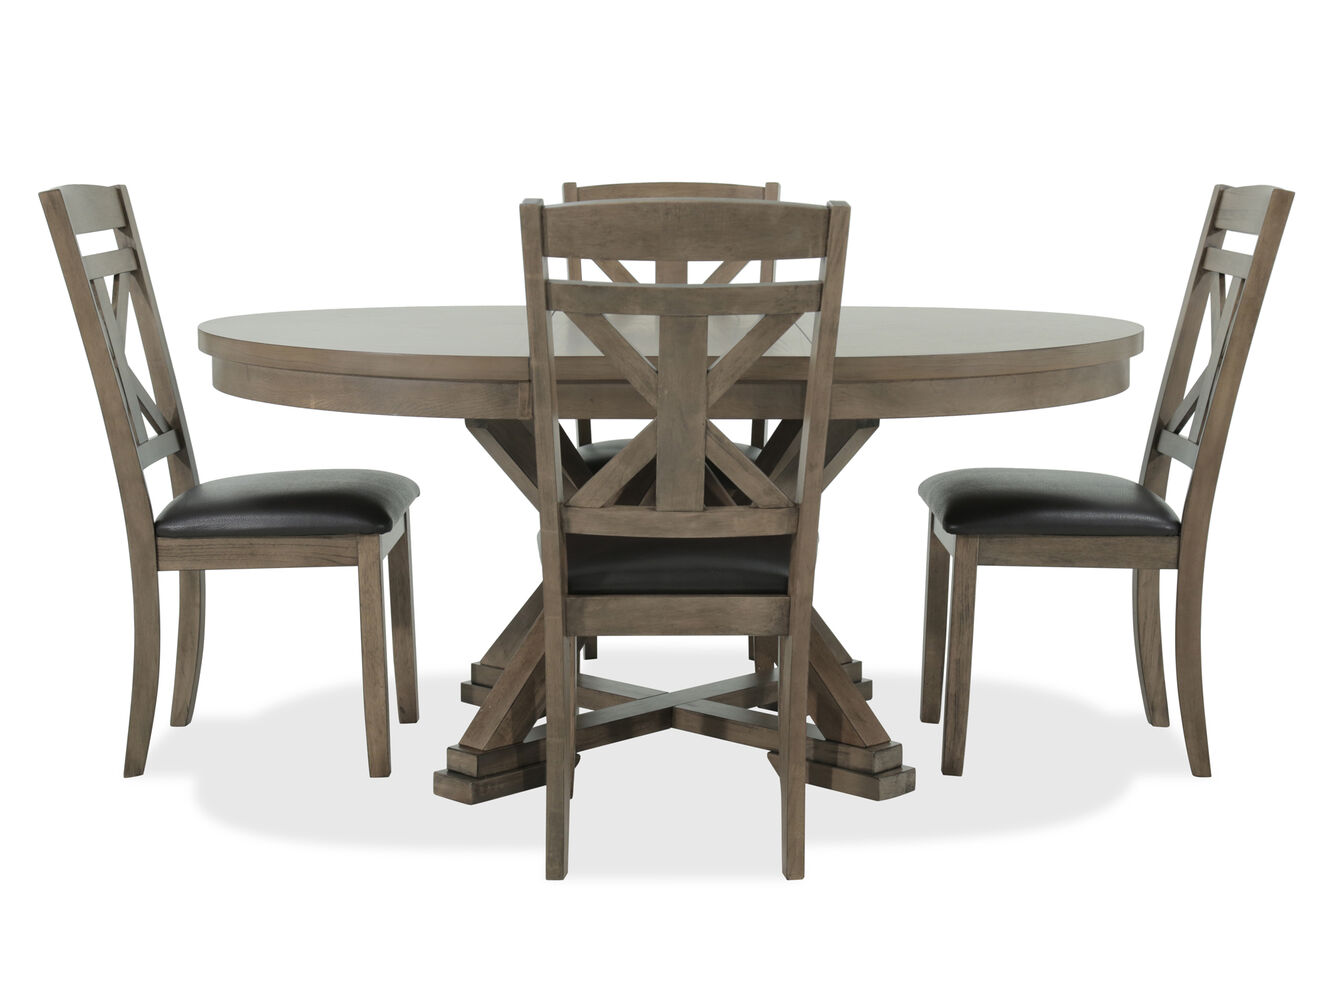 mathis brothers dining room sets | Five-Piece Casual Round Expandable 48'' Dining Set in ...